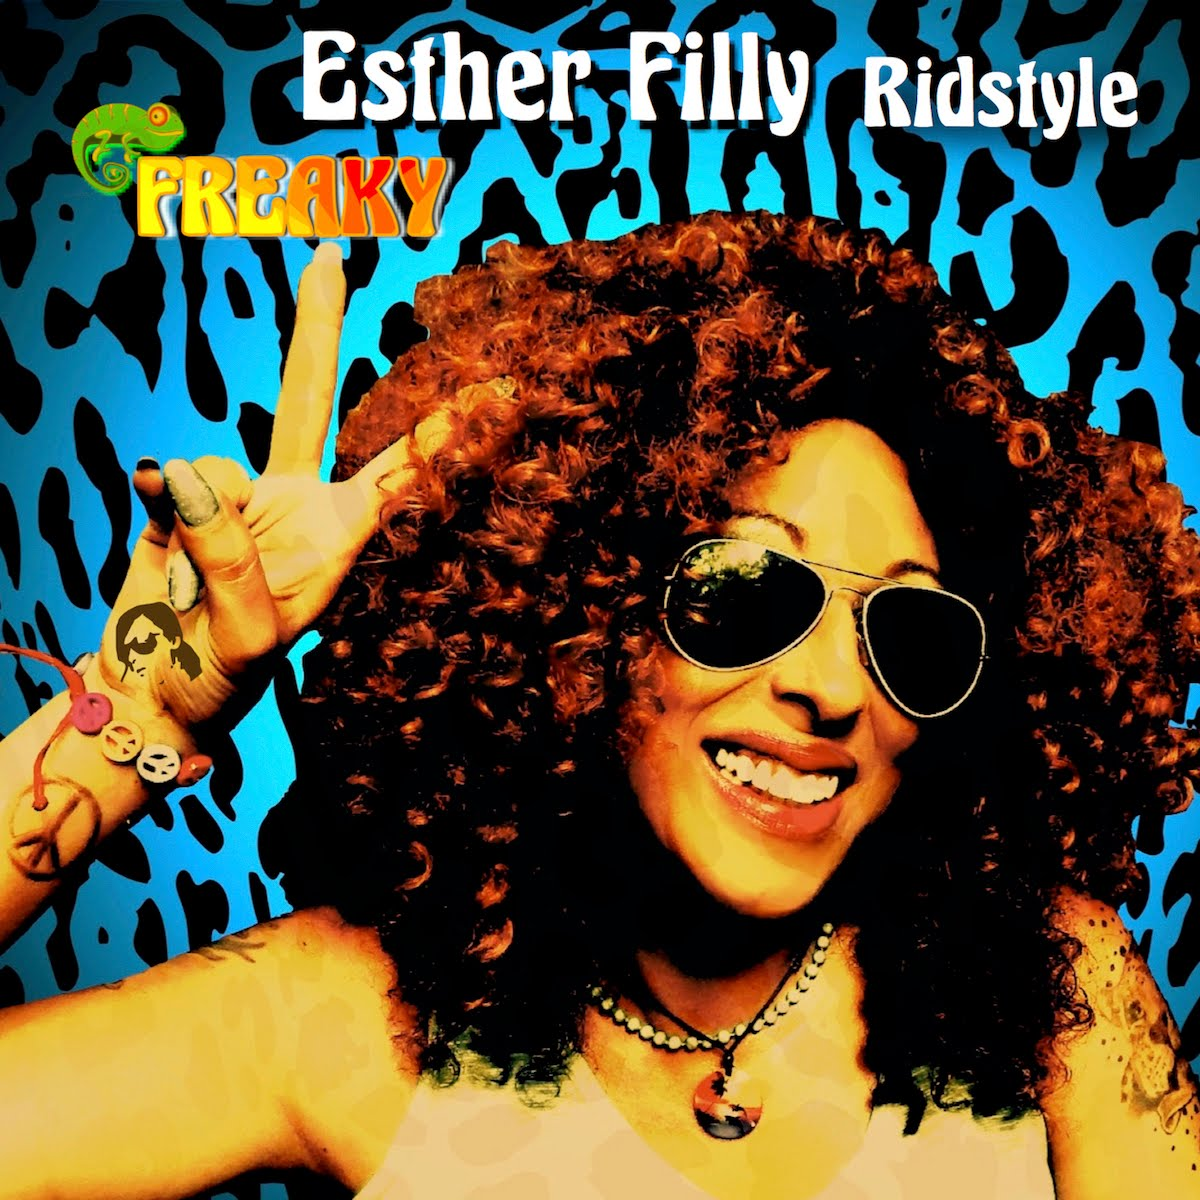 Esther Filly Ridstyle